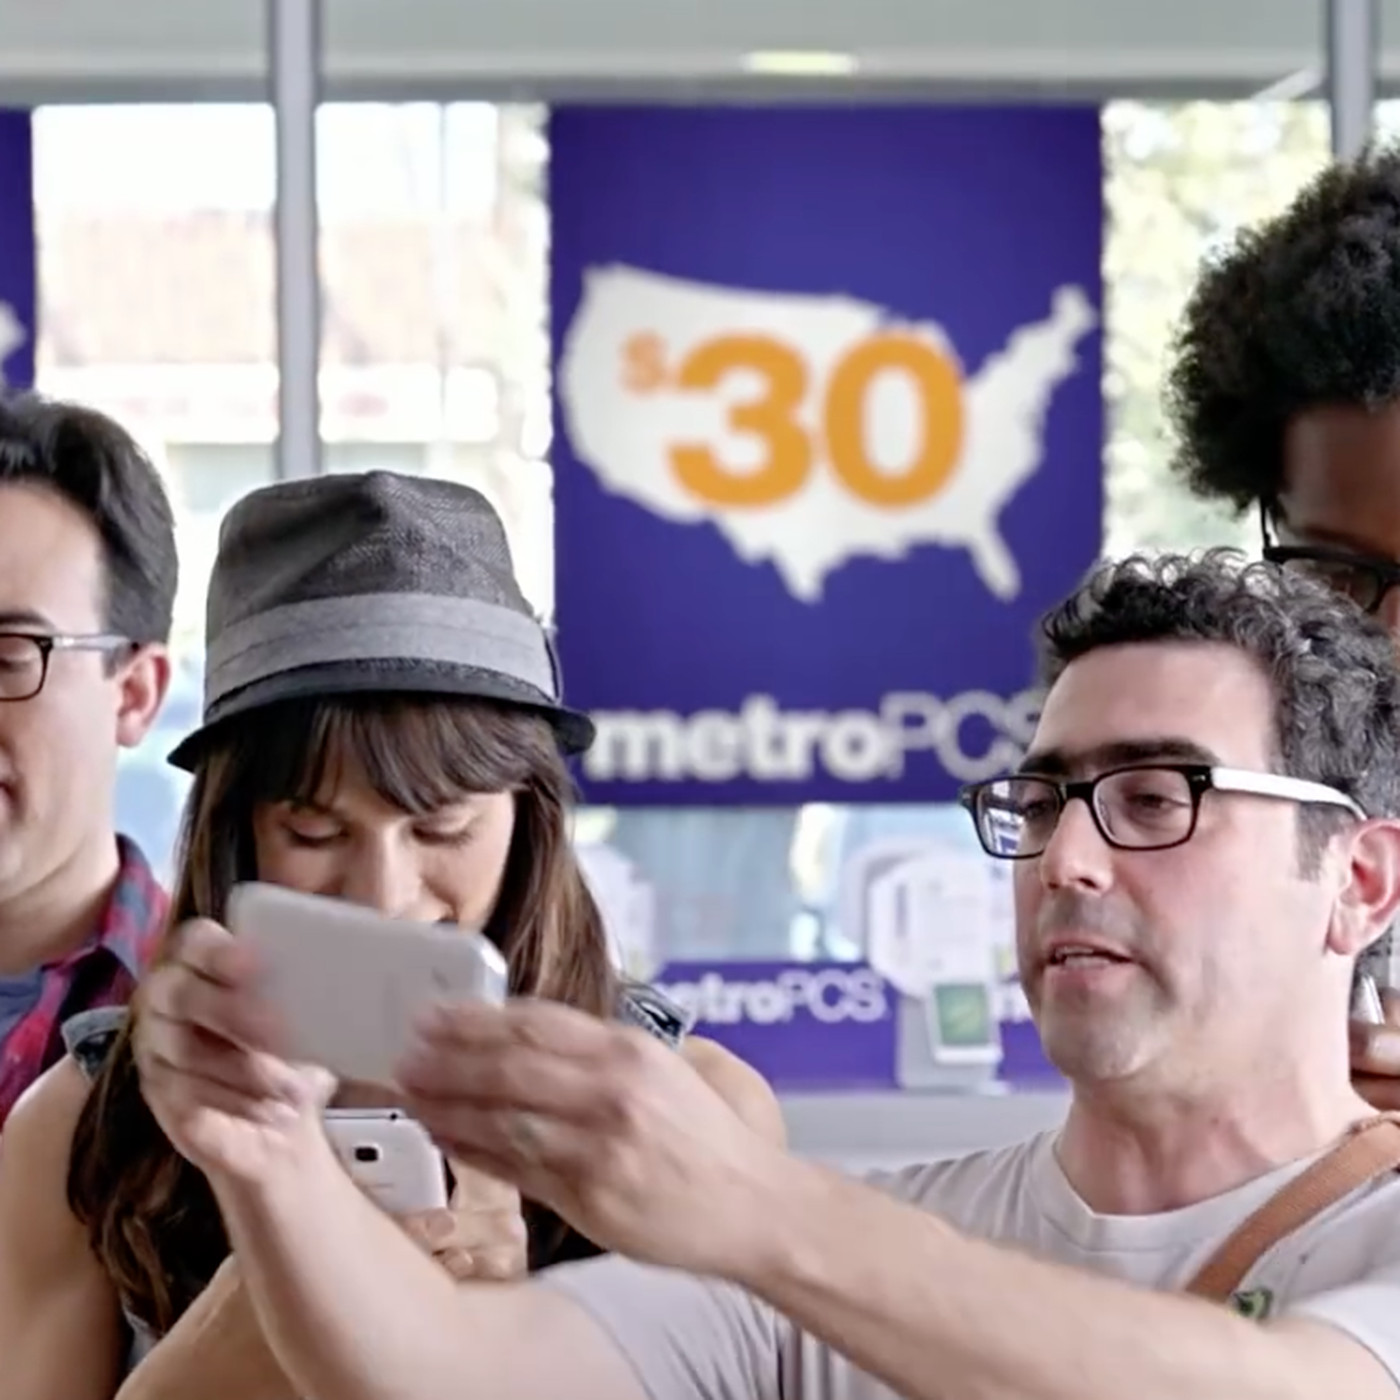 MetroPCS customers are getting unlimited music streaming - The Verge